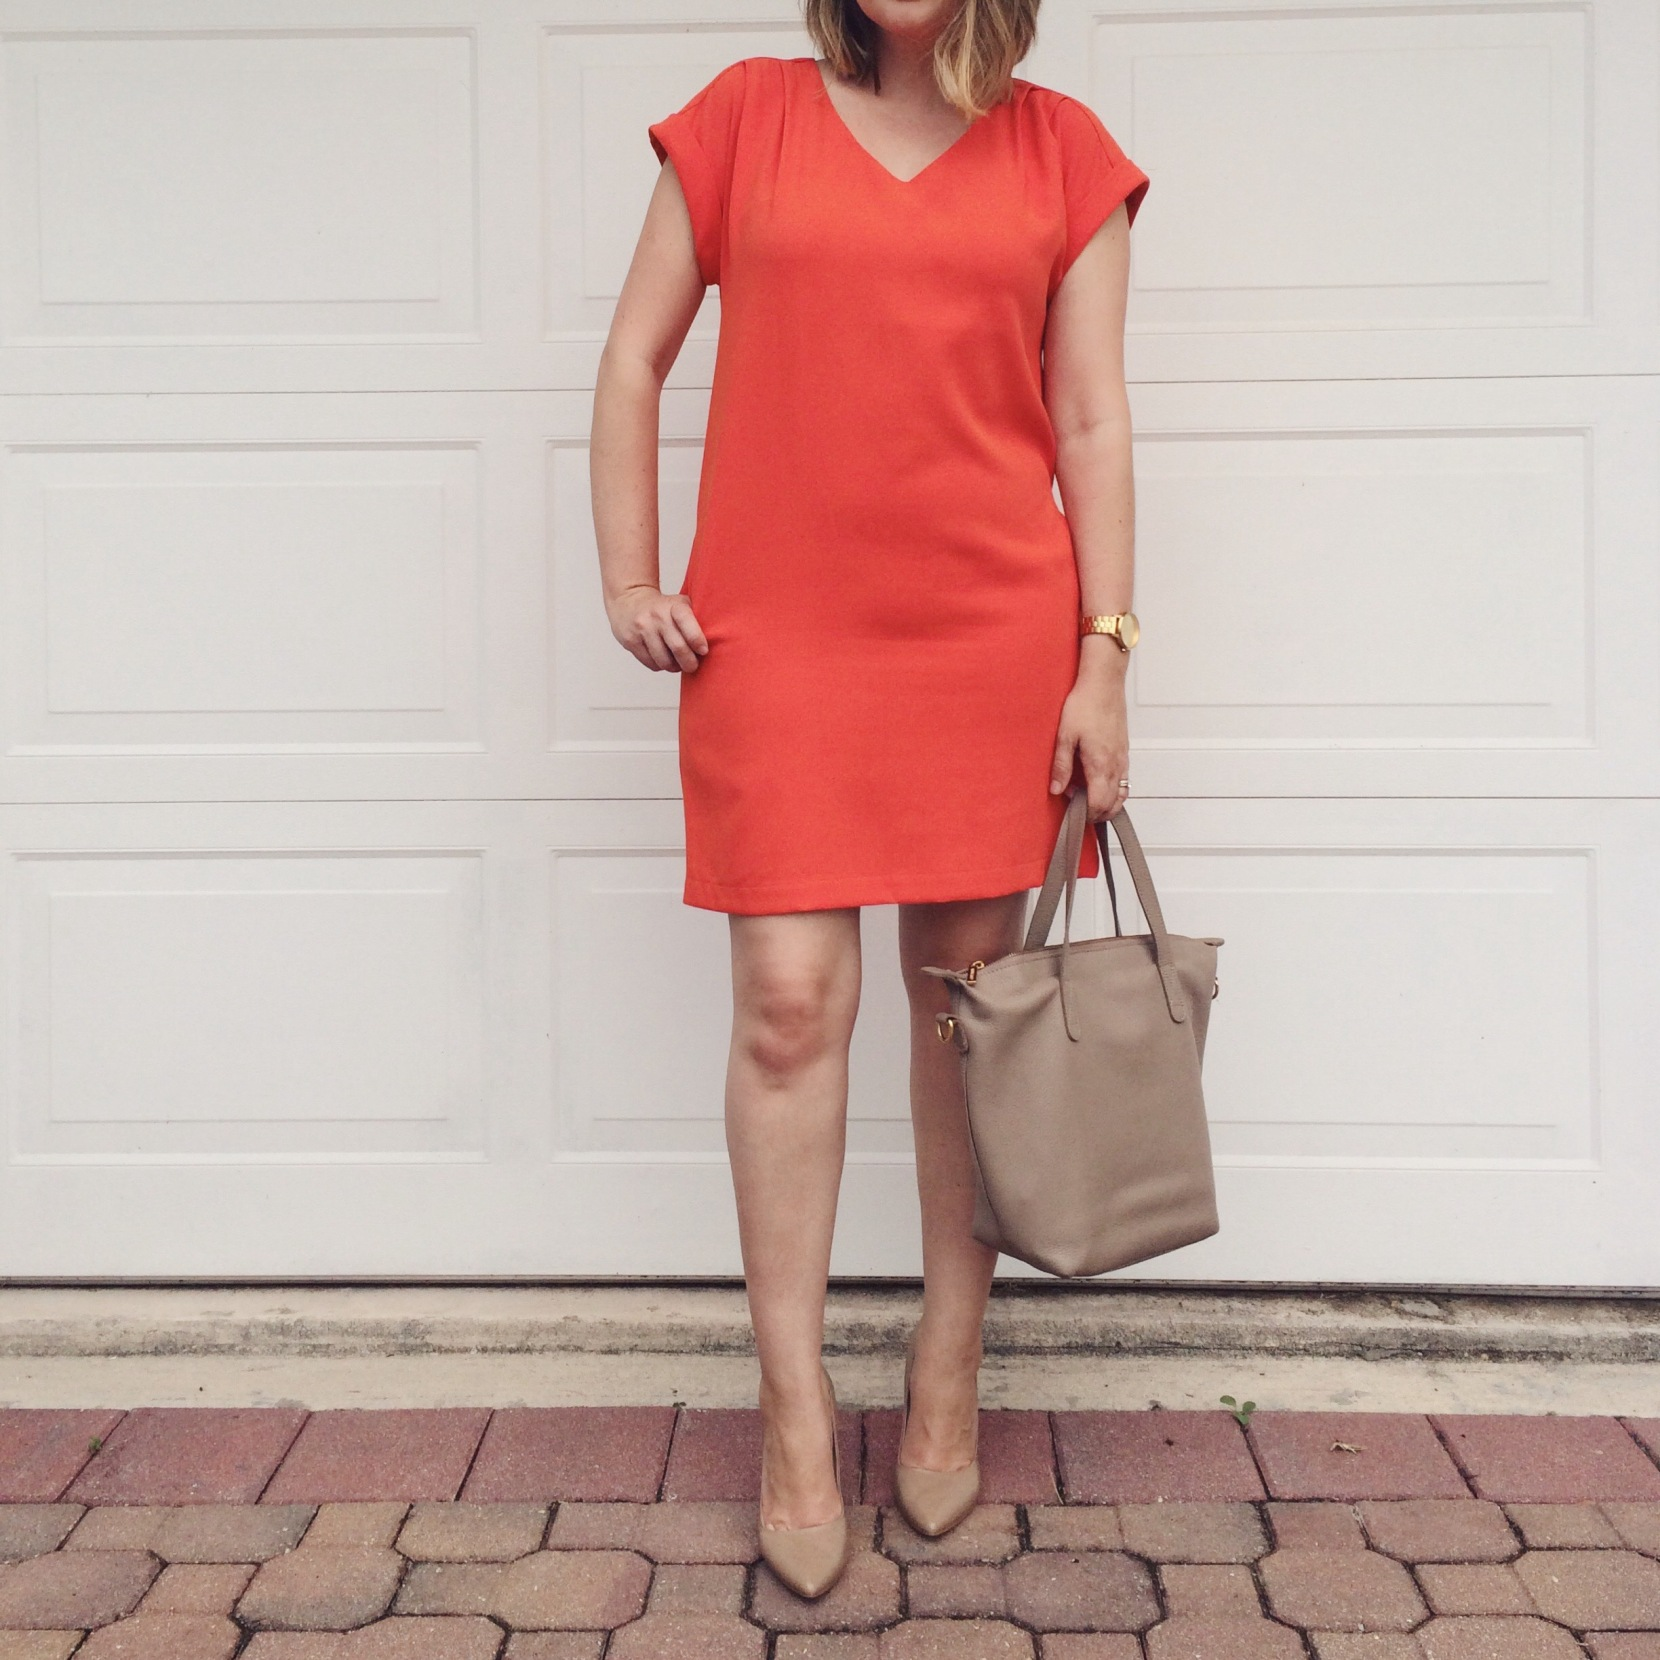 OOTD: Bright orange dress with nude heels and Cuyana small carryall tote. keiralennox.com